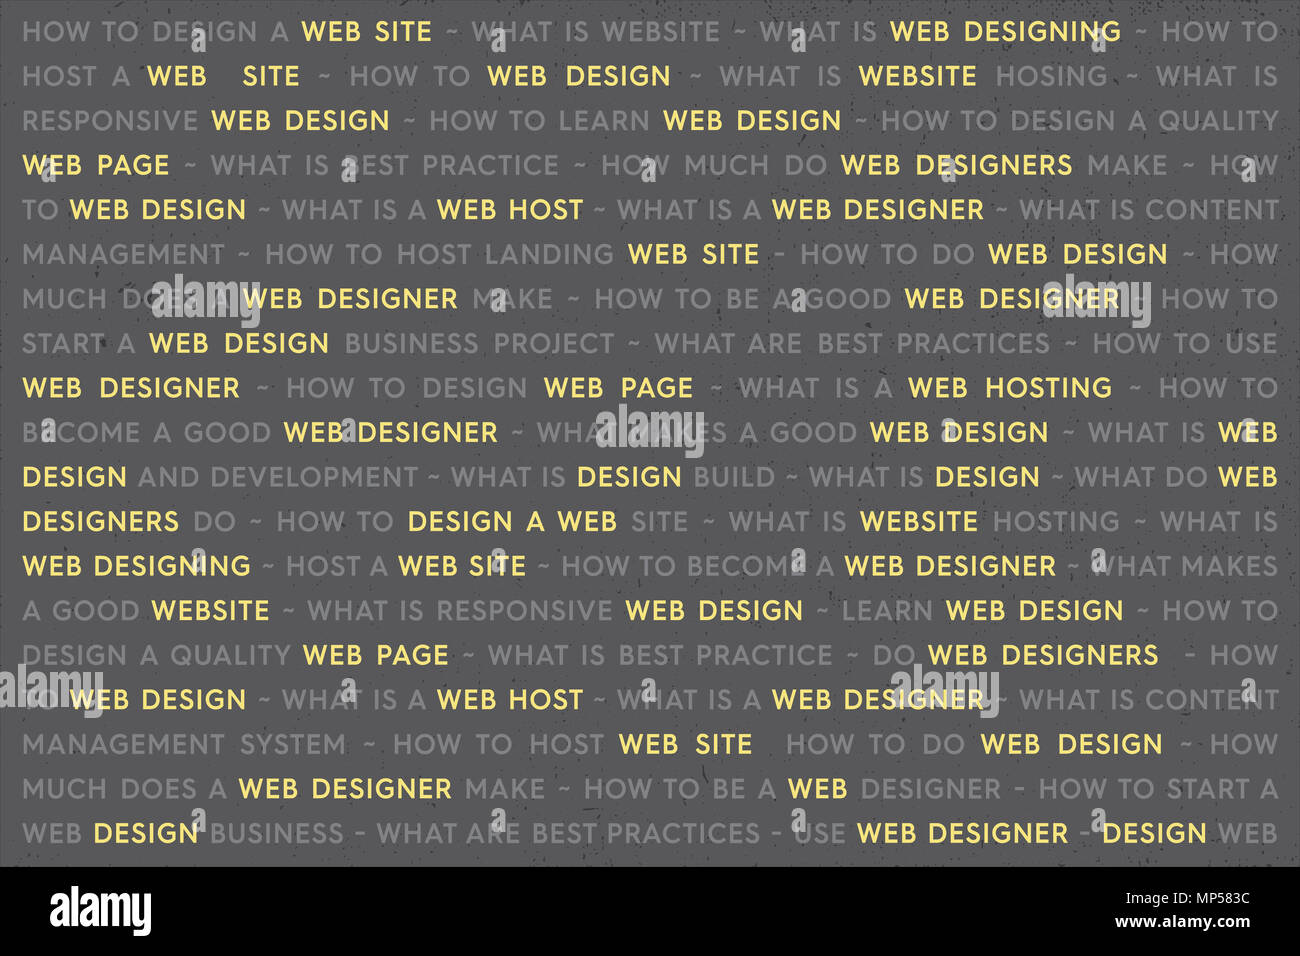 Yellow Web Design Keywords Poster Concept Web Network Working Text With Highlighted Yellow Key Words Internet Technology Conceptual Creative On Gray Stock Photo Alamy